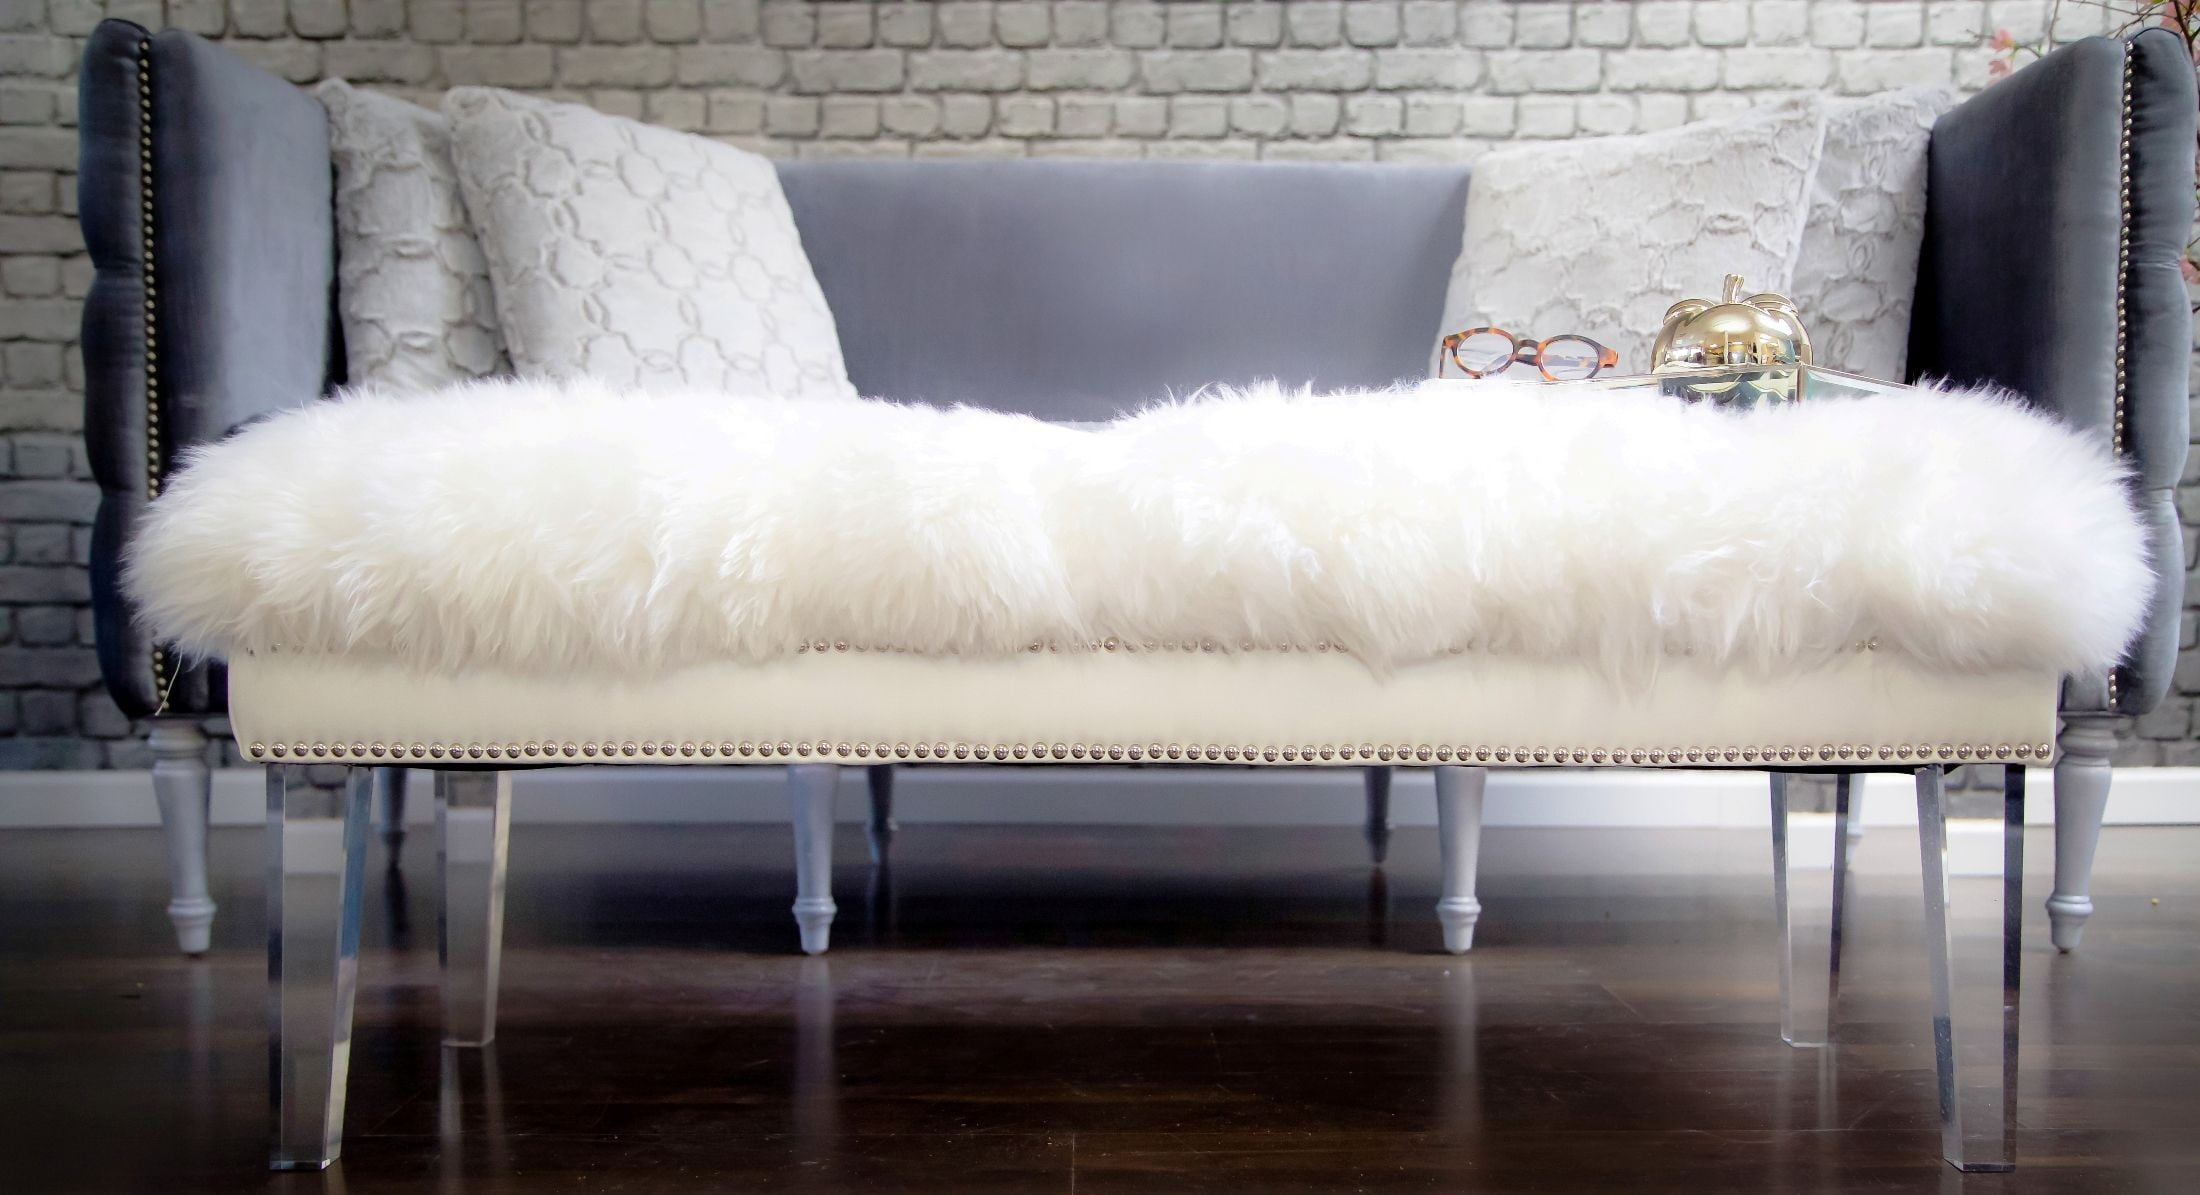 white sheepskin lucite bench from tov tov o22 coleman furniture